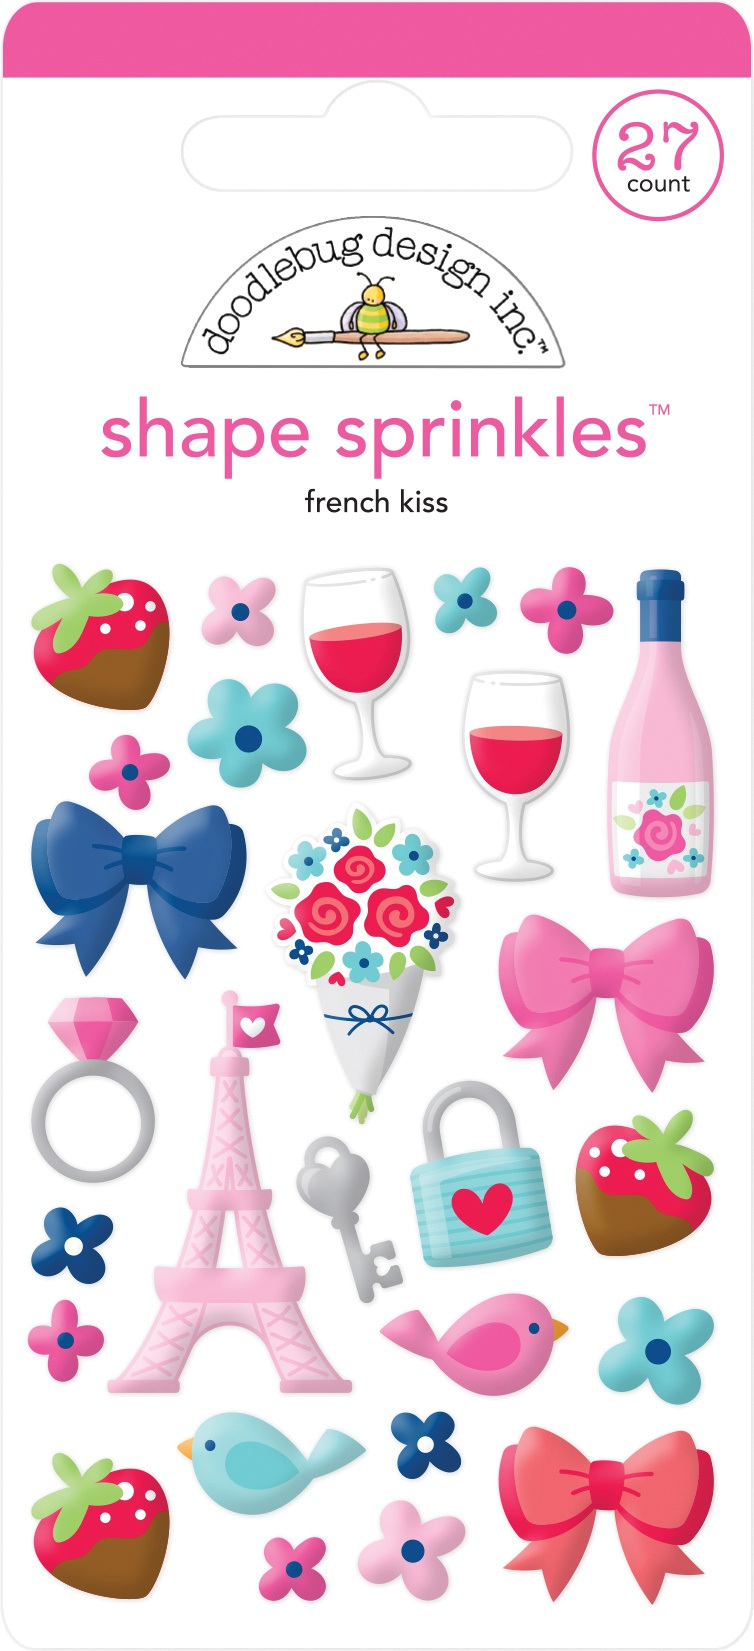 FRNCH KISS-FRENCH KISS SPRINKLE